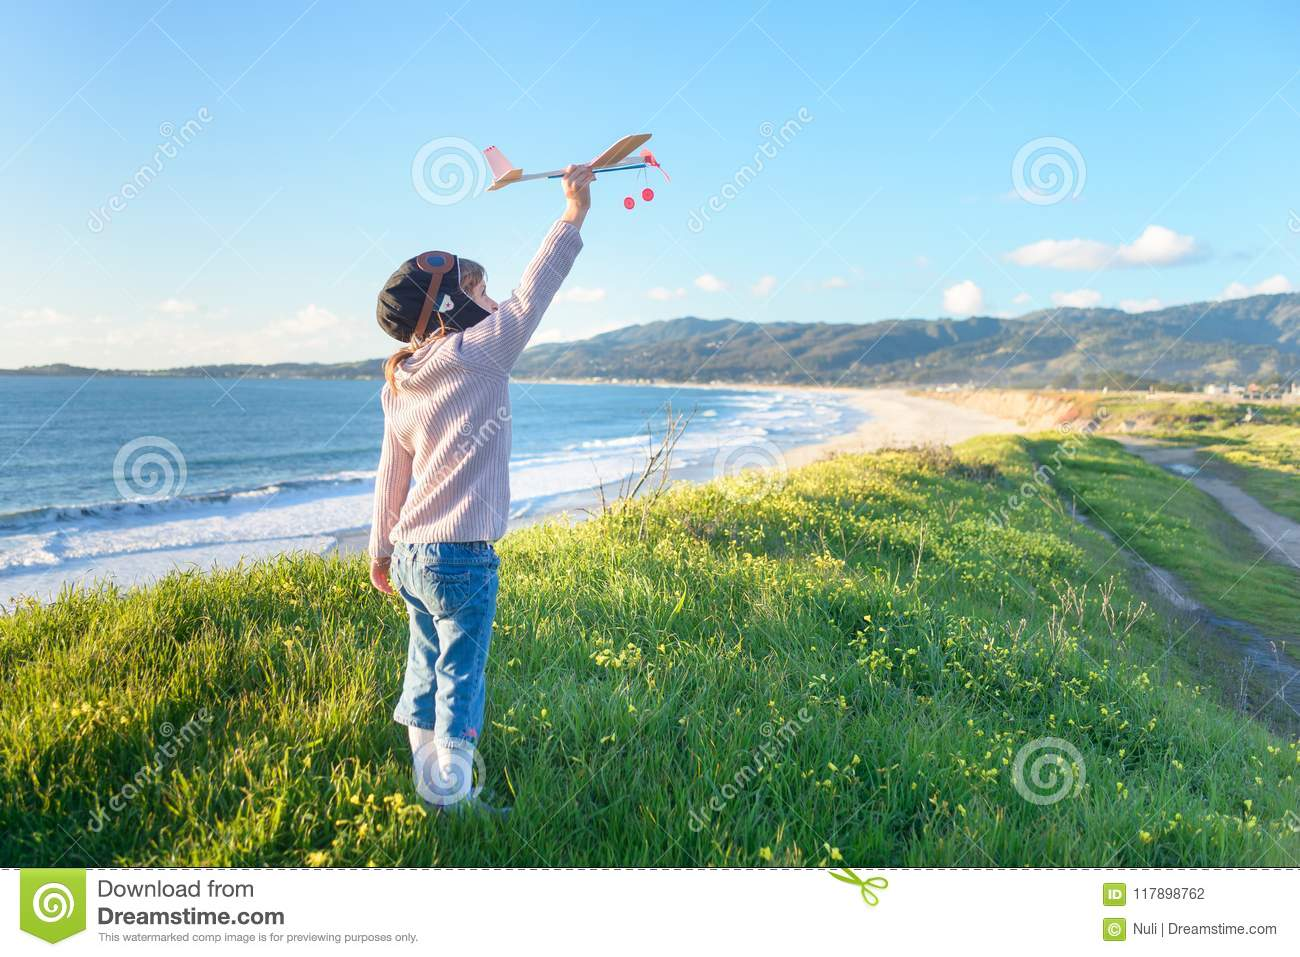 99a48230d0a Girl In Aviator Hat Playing Pilot With Toy Plane Outside Stock Photo ...